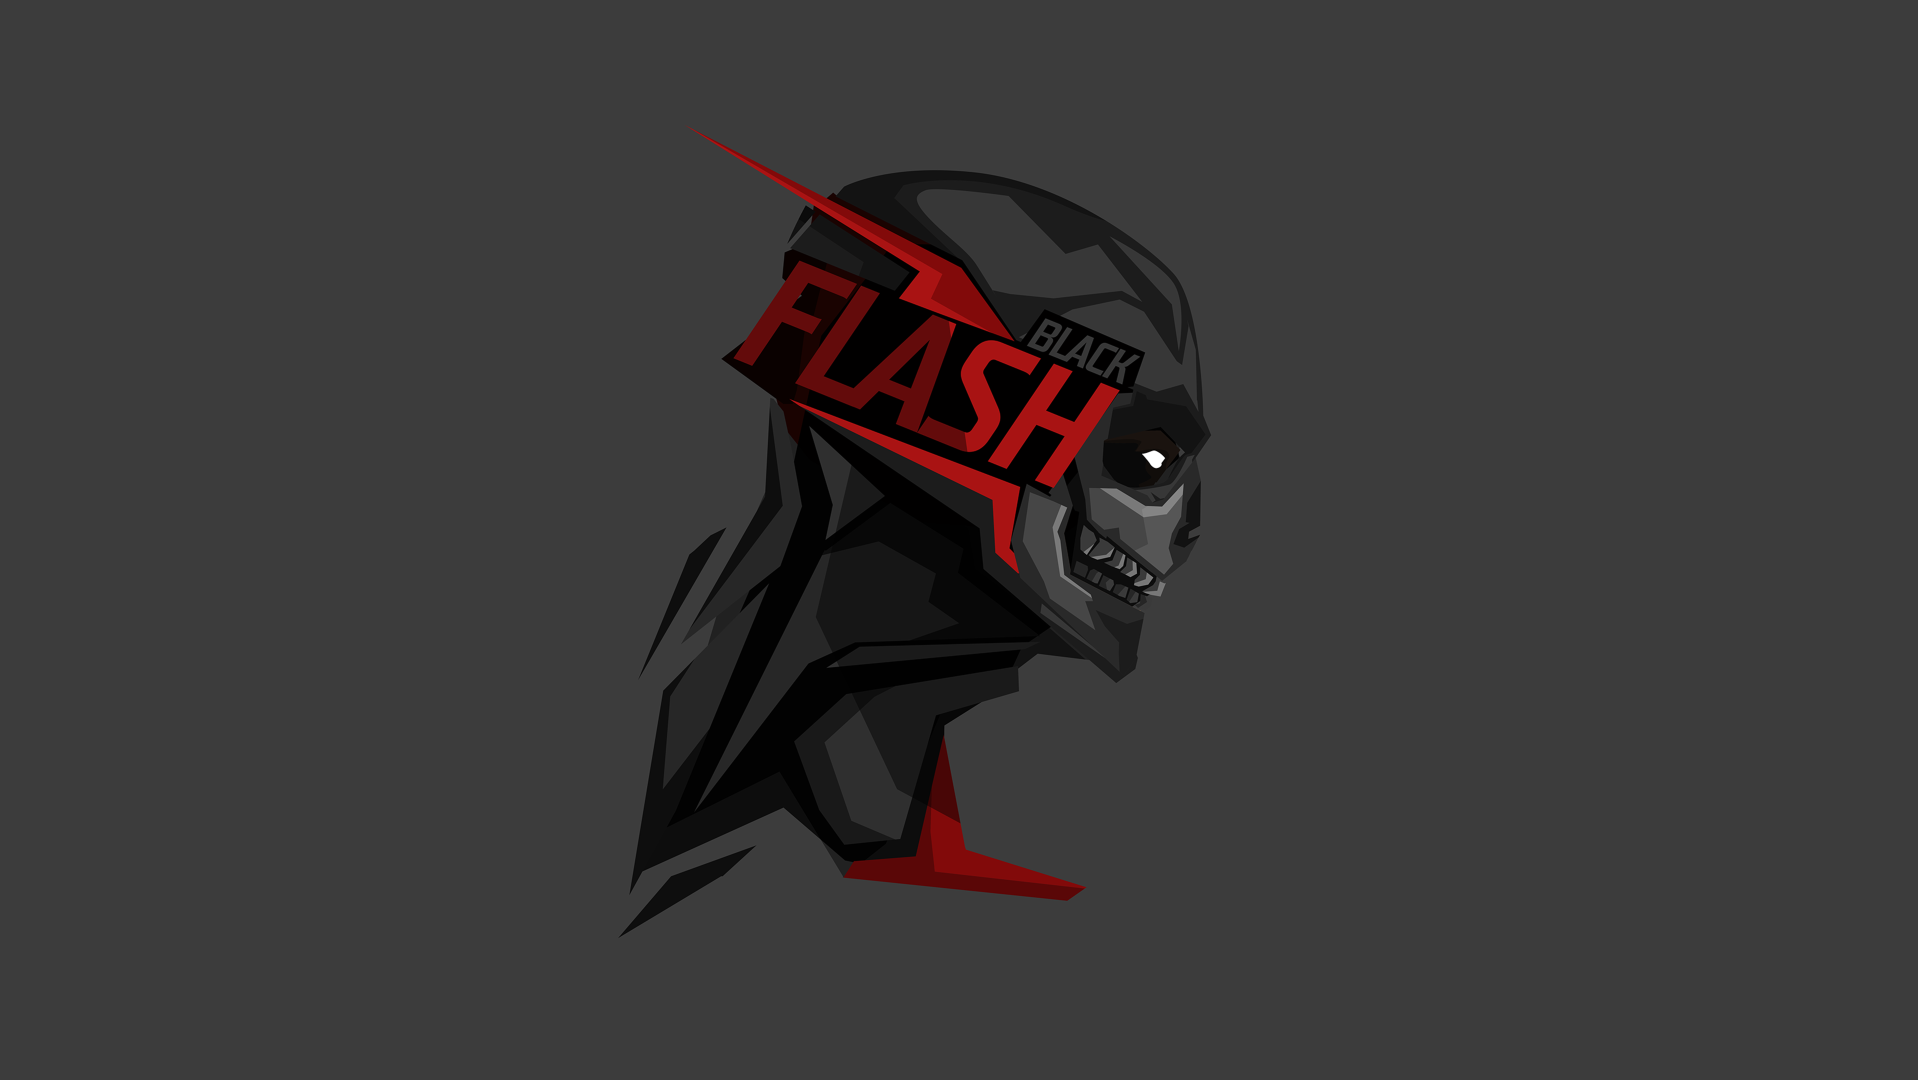 Black Flash Wallpaper Clipart Images Gal 1332930 Png Images Pngio